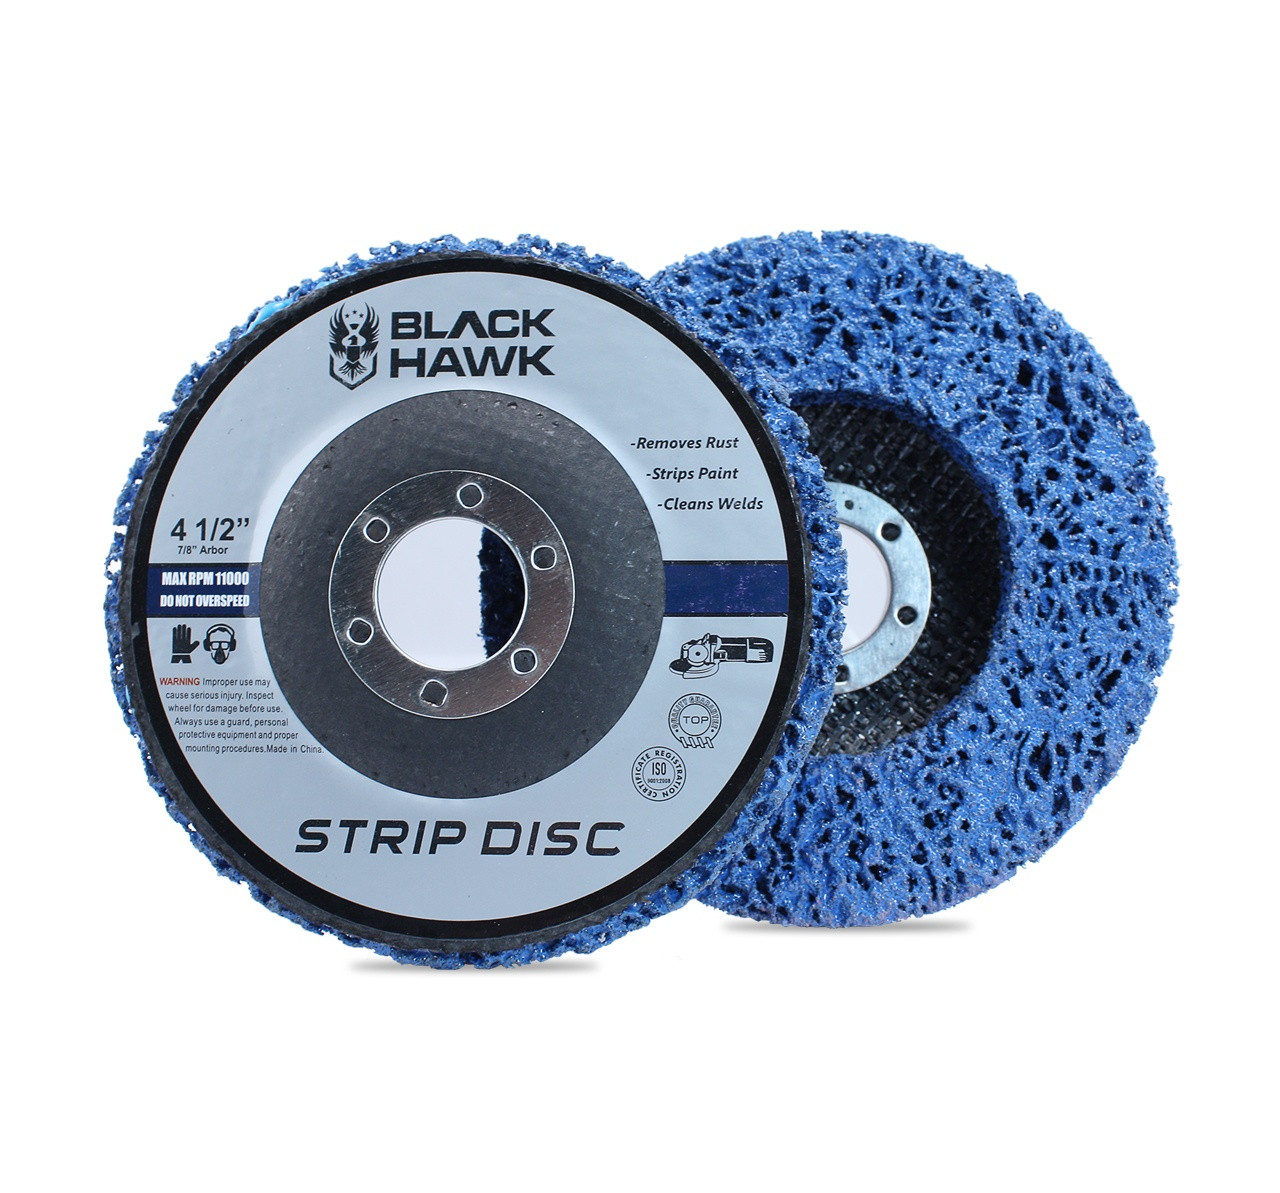 10 Pack 4-1//2 x 7//8 Strip/&Clean Discs Fit For Angle Grinders-Removes Rust Strips Paint Cleans Welds